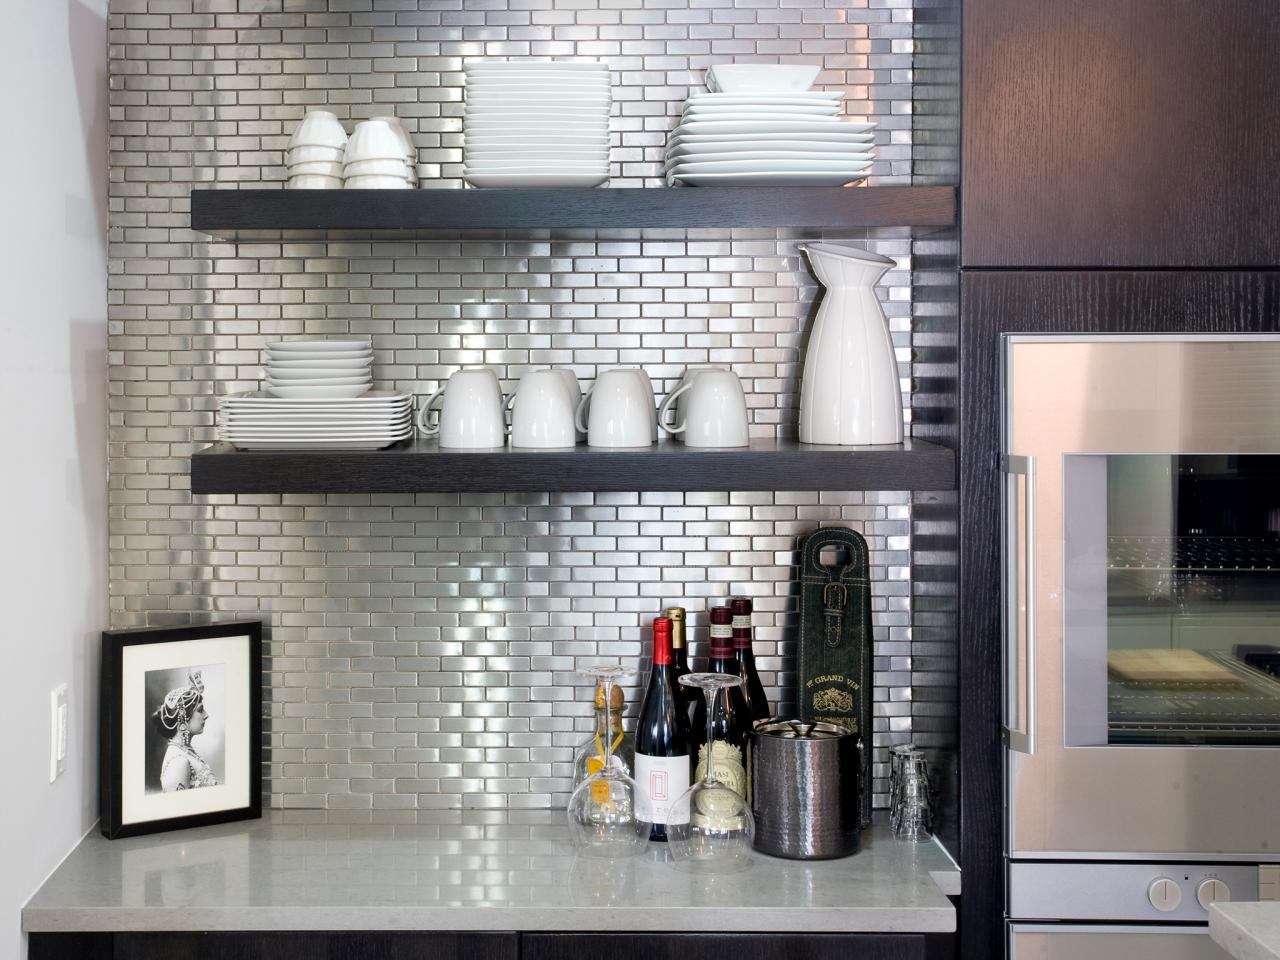 Kitchen backsplash tile ideas hgtv - Backsplash ideas kitchen ...